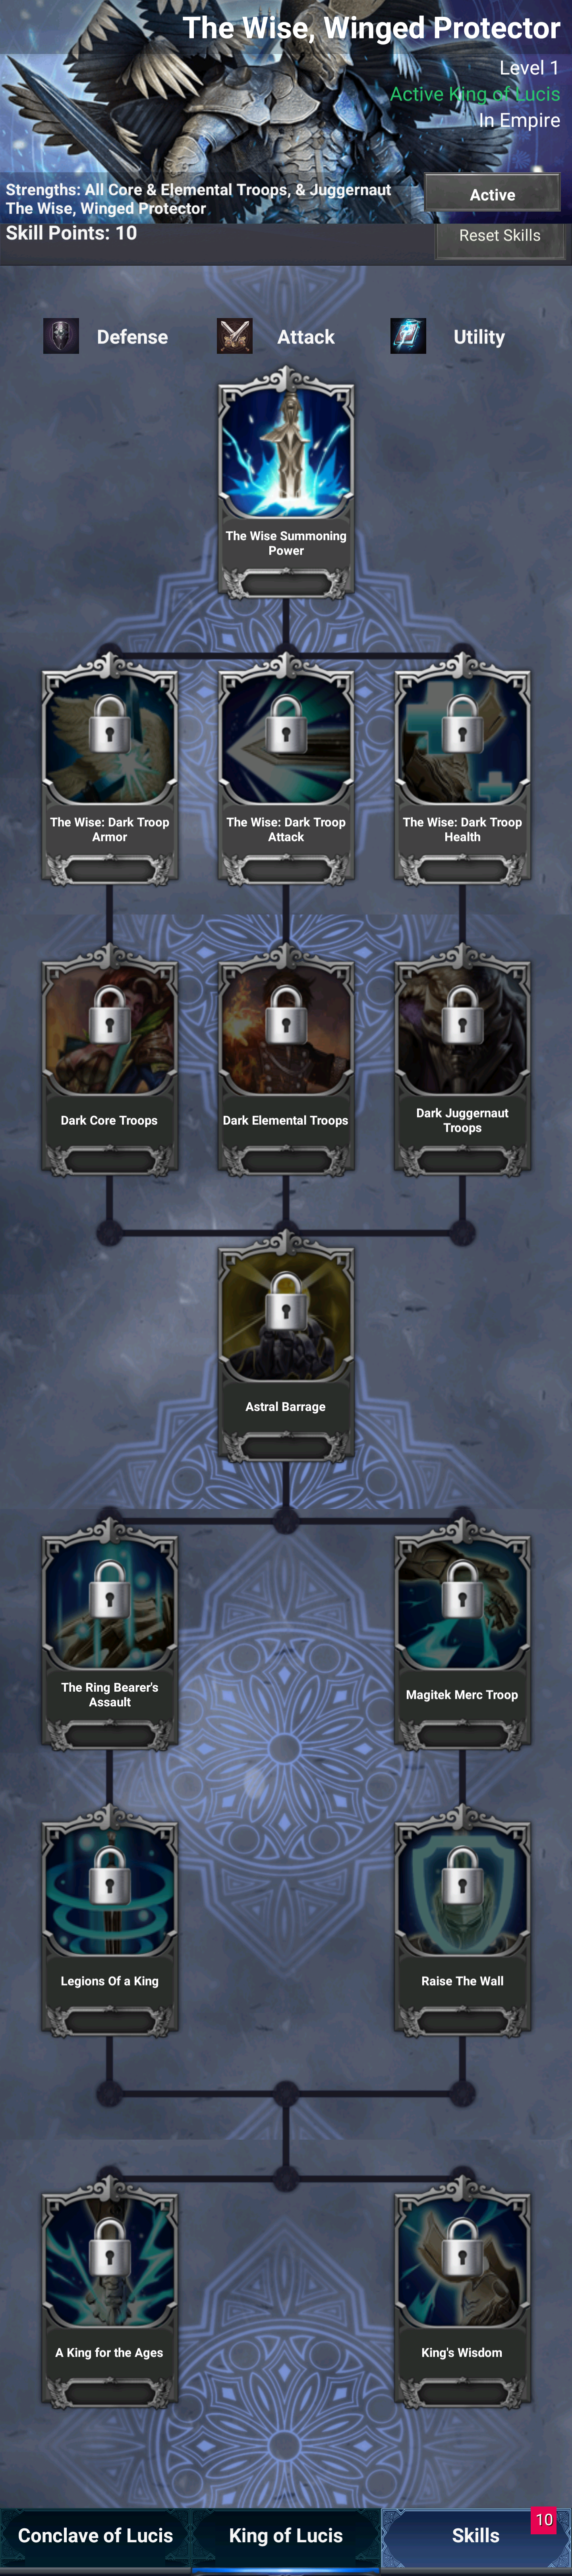 The Wise Skill Tree